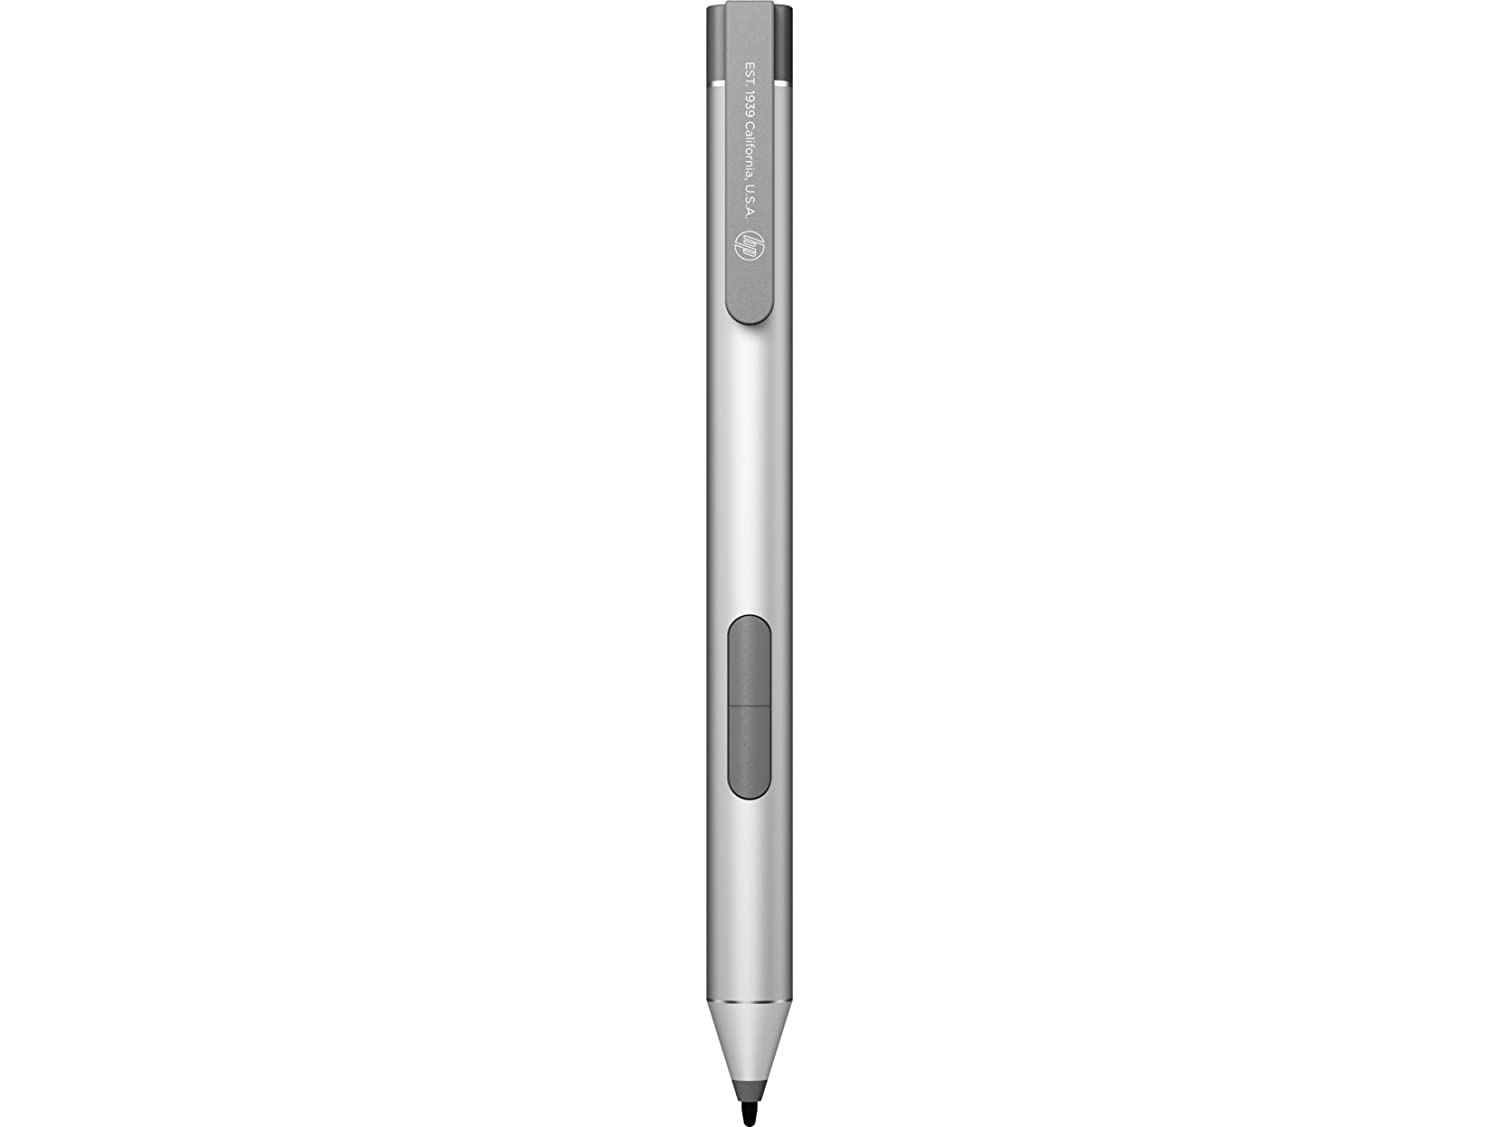 hp active pen with app launch drivers